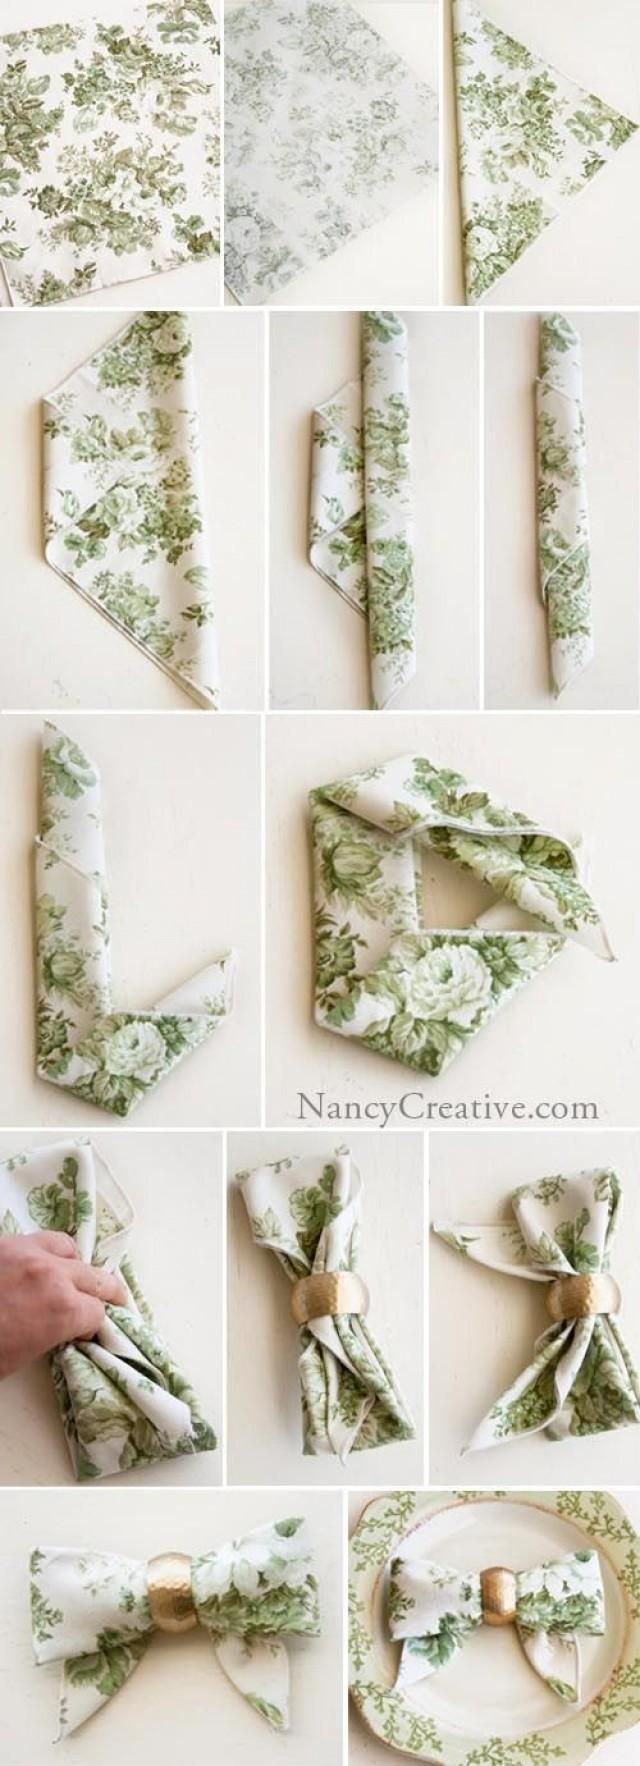 Weddbook is a content discovery engine mostly specialized on wedding concept. You can collect images, videos or articles you discovered organize them, add your own ideas to your collections and share with other people - See more about napkins and bows. napkin #napkin